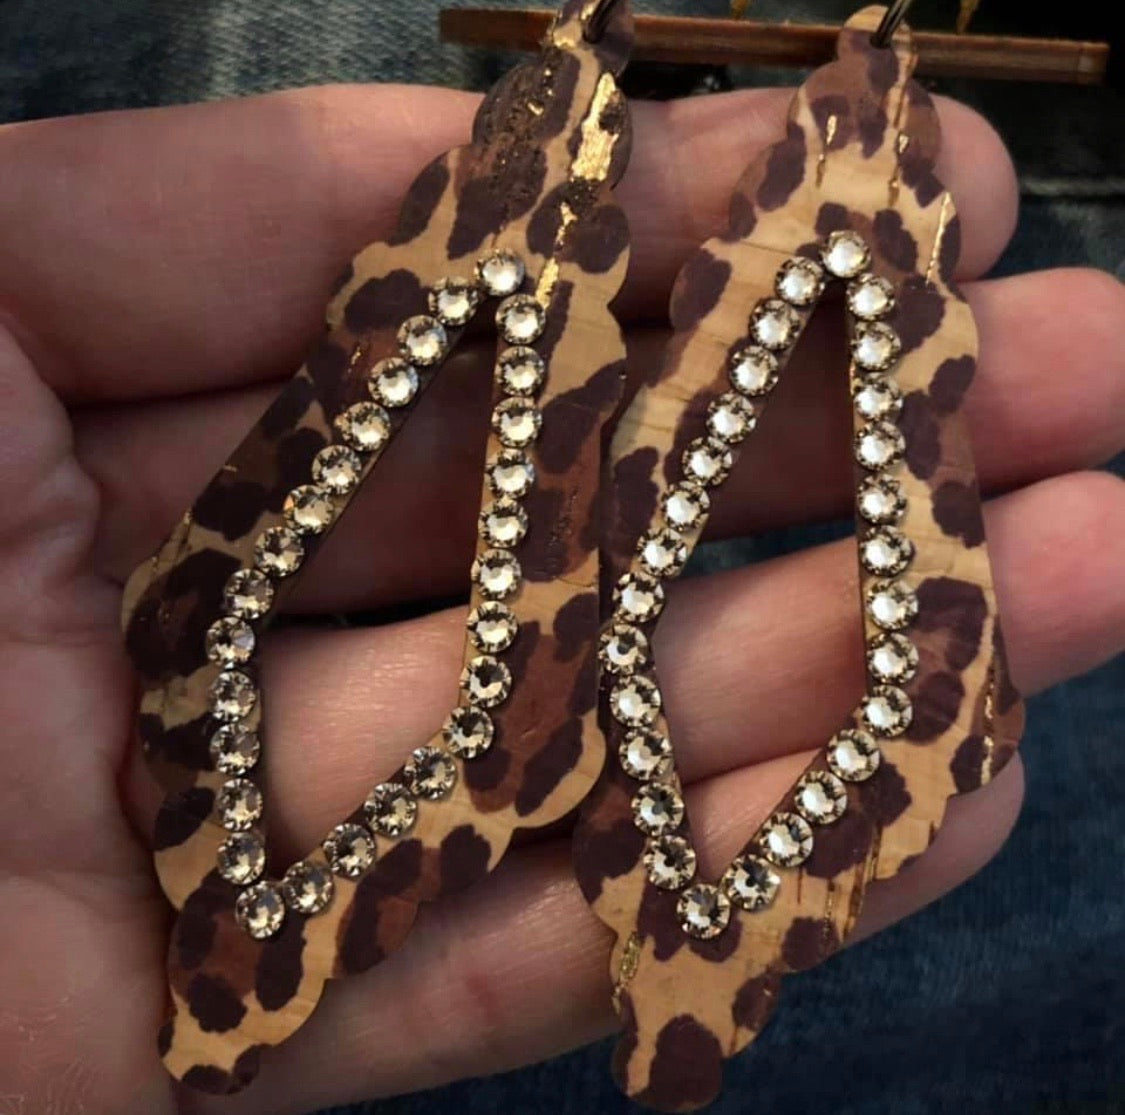 Leopard Cork Earrings with Swarovski crystals